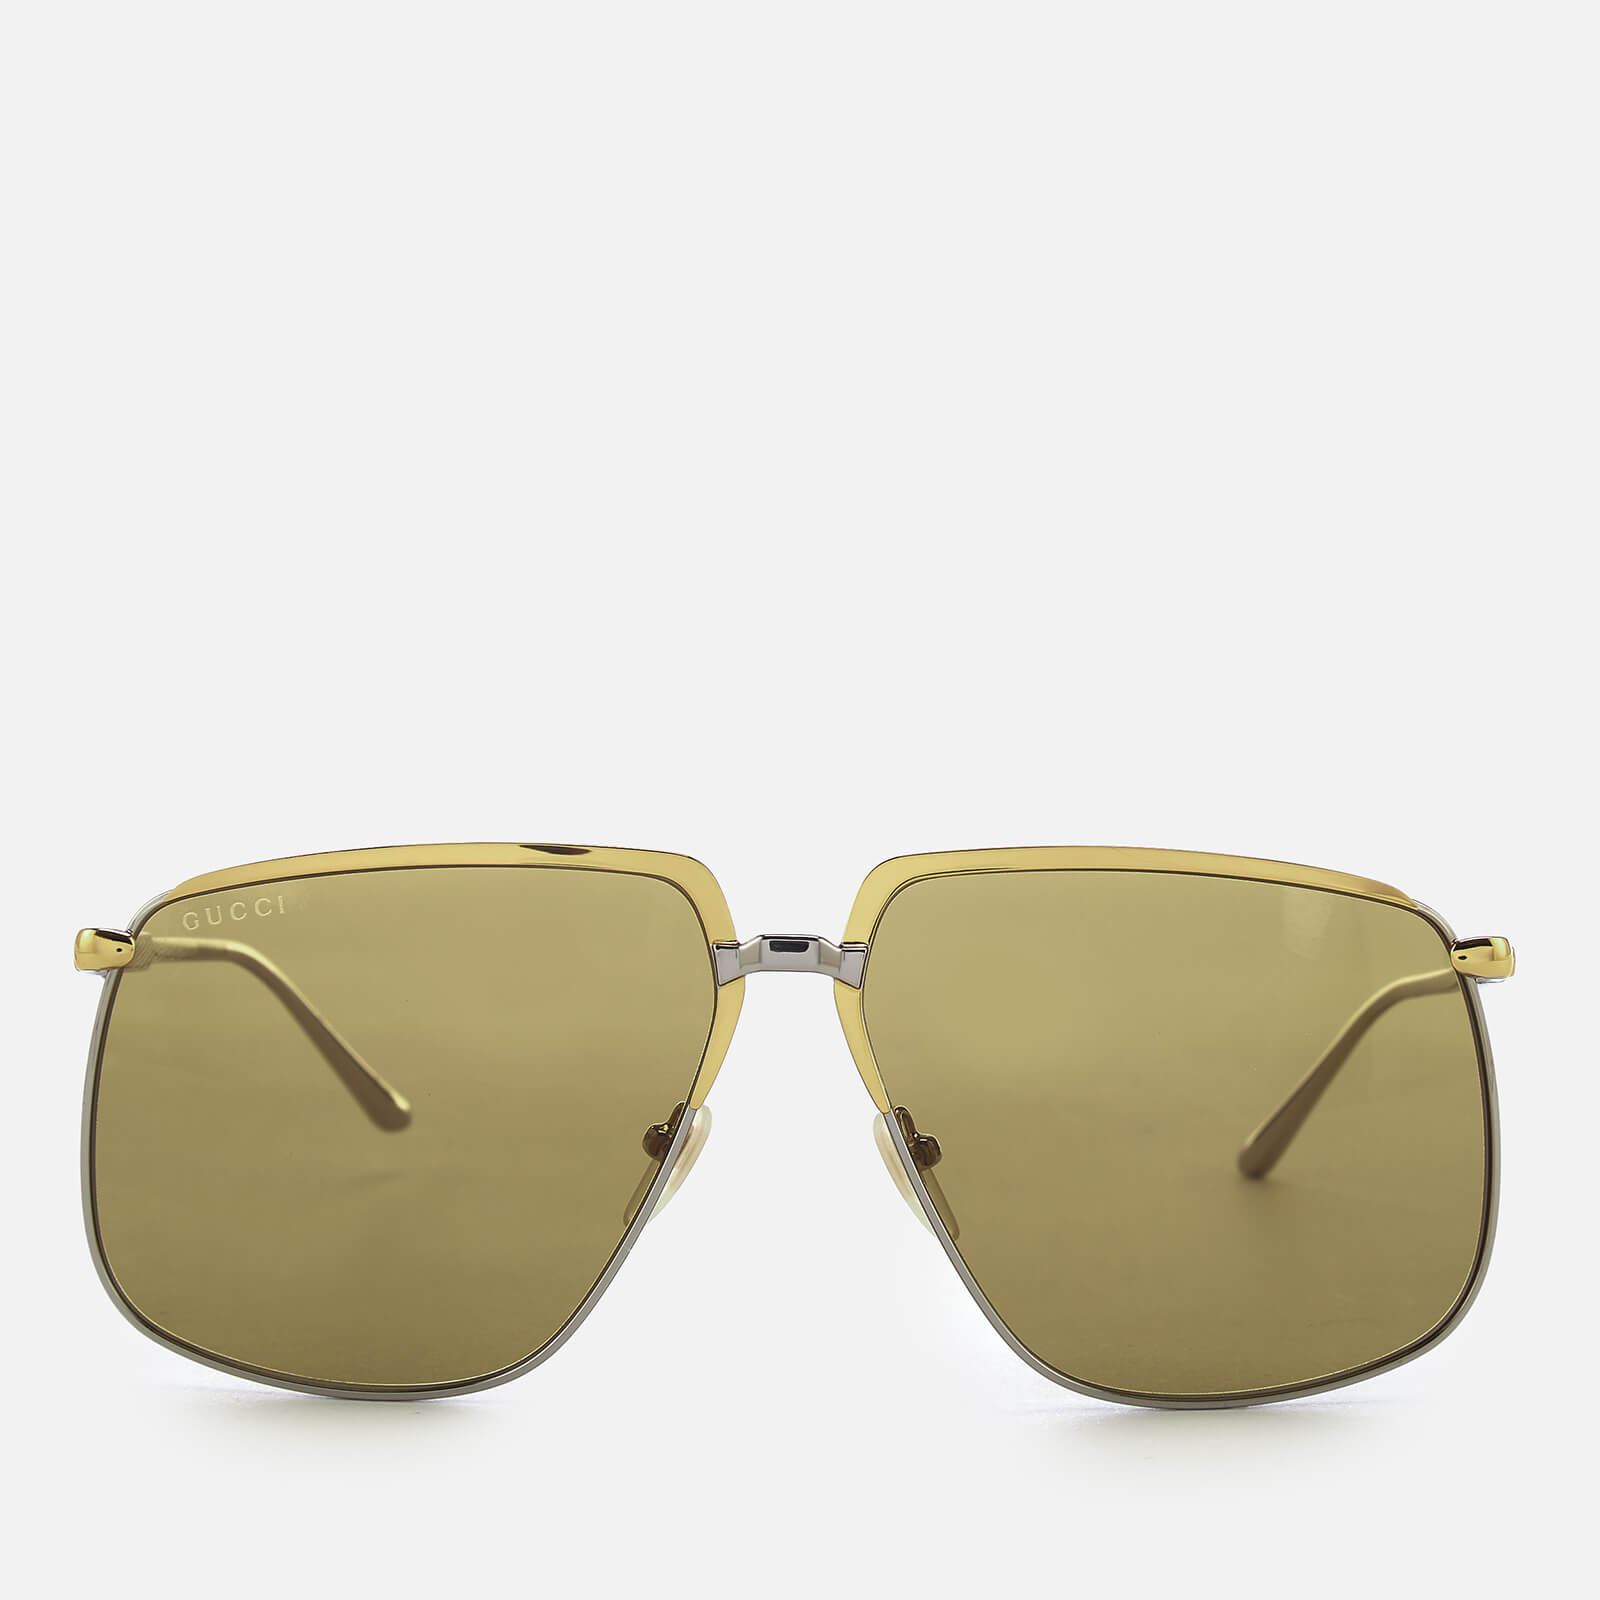 253ce724b7e Gucci Women s Aviator Metal Frame Sunglasses - Gold - Free UK Delivery over  £50